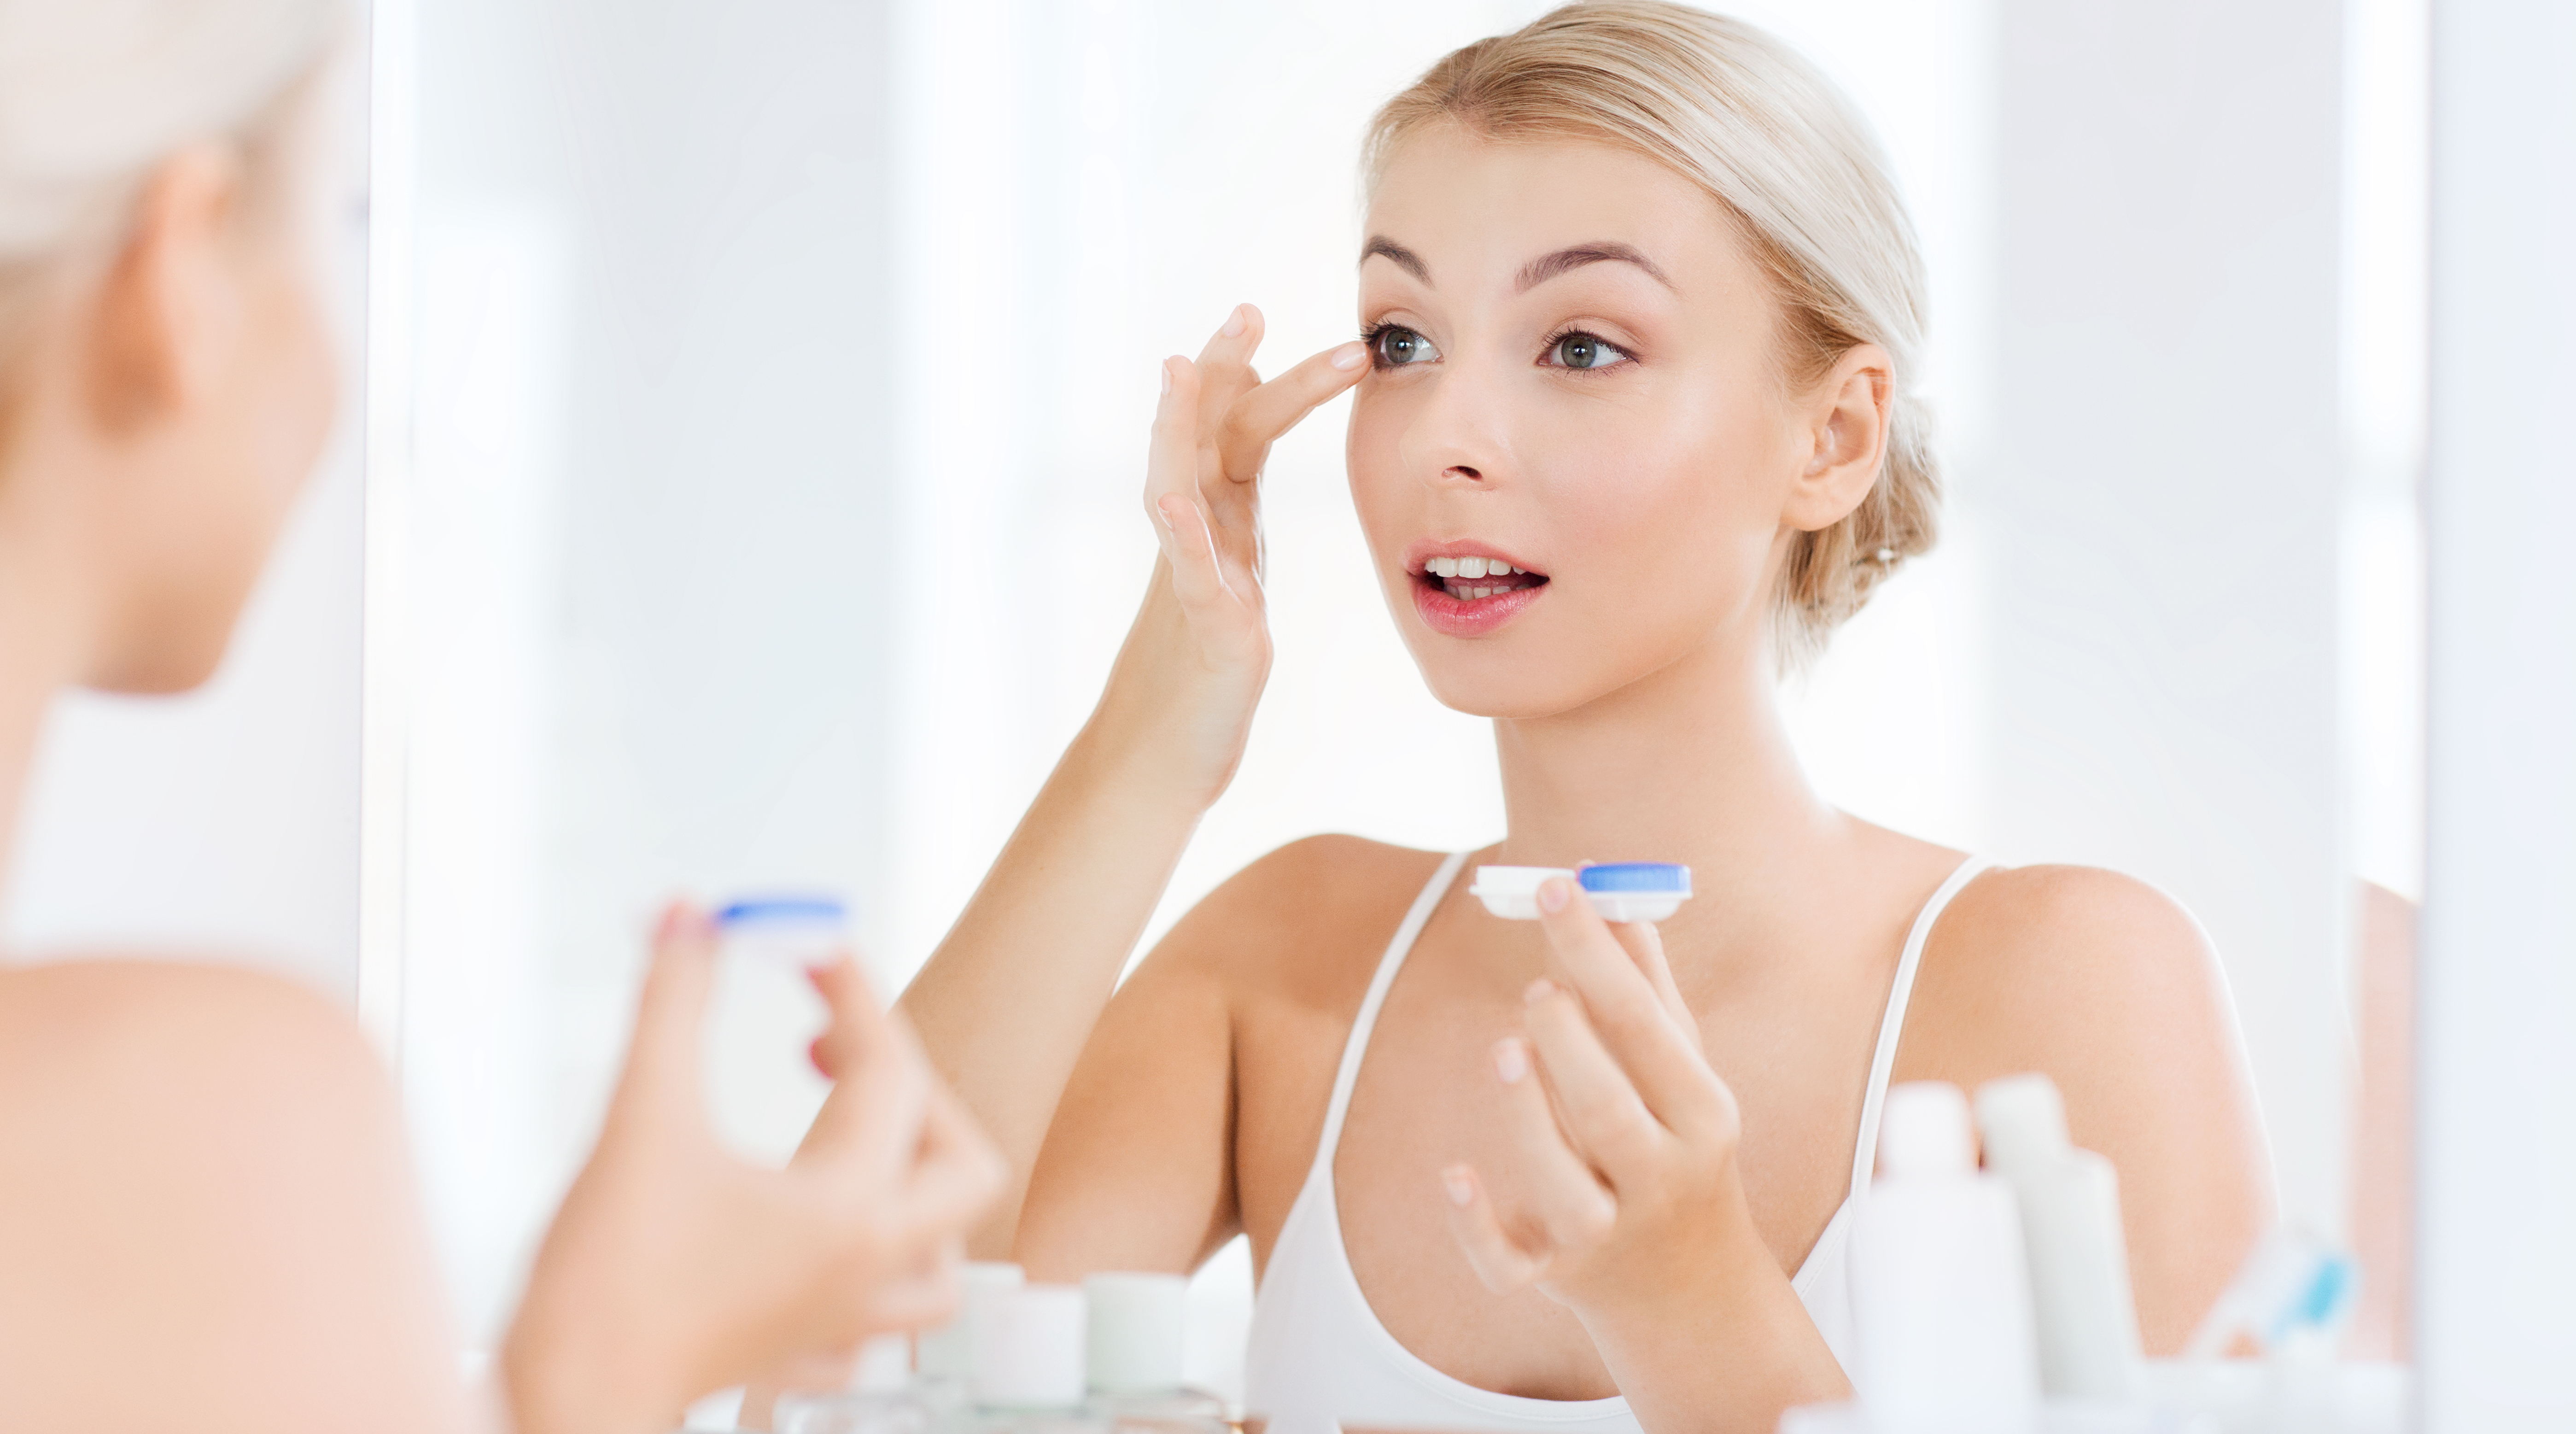 How to Look After Your Contact Lenses | Top Tips | Eyesite